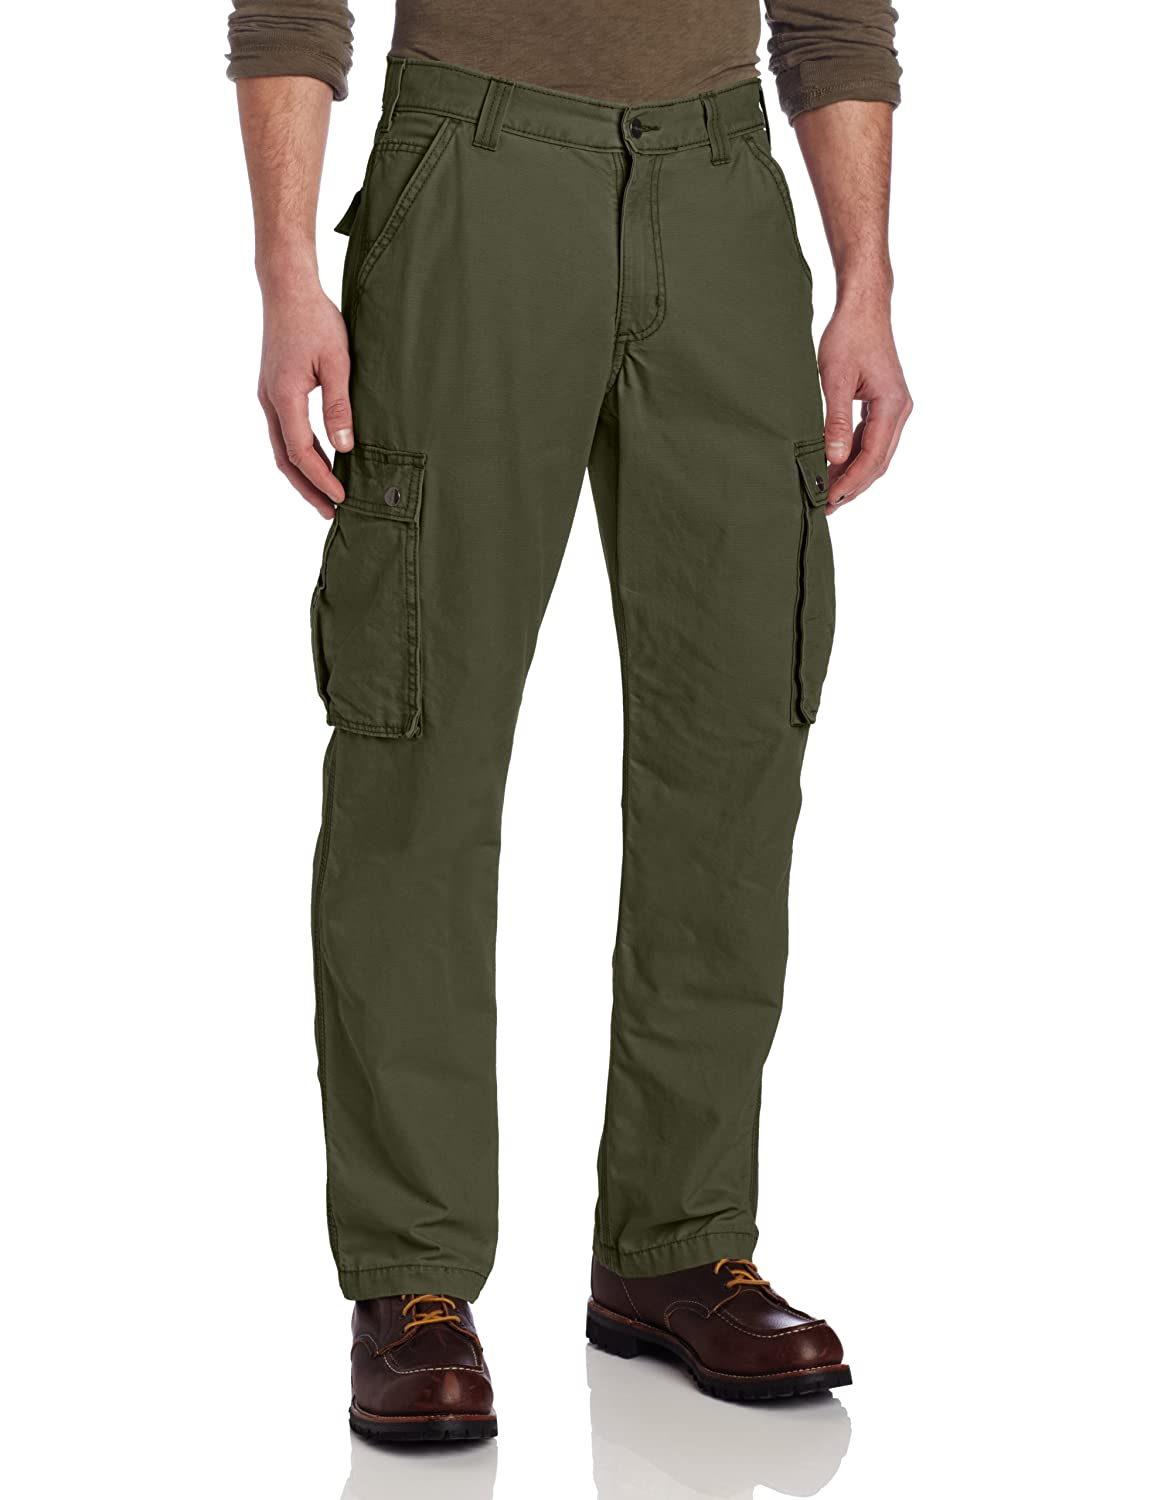 Black Cargo Pants For Men Levis